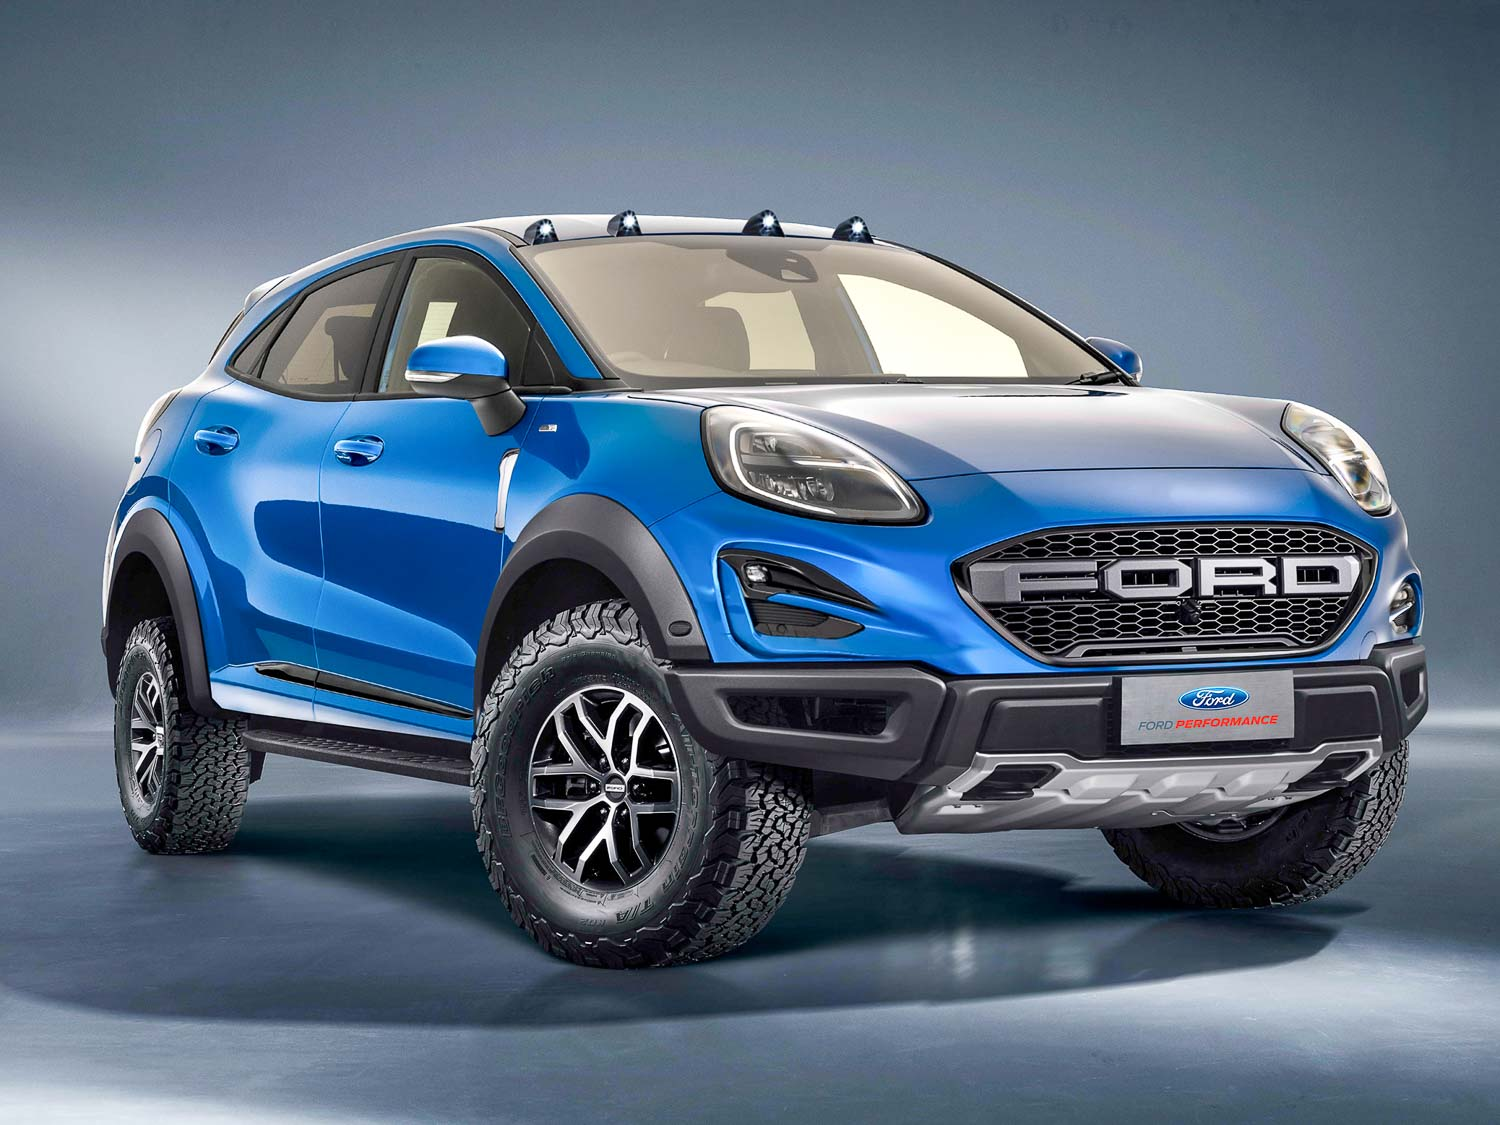 Ford Puma Raptor rendered as a crazy-looking crossover